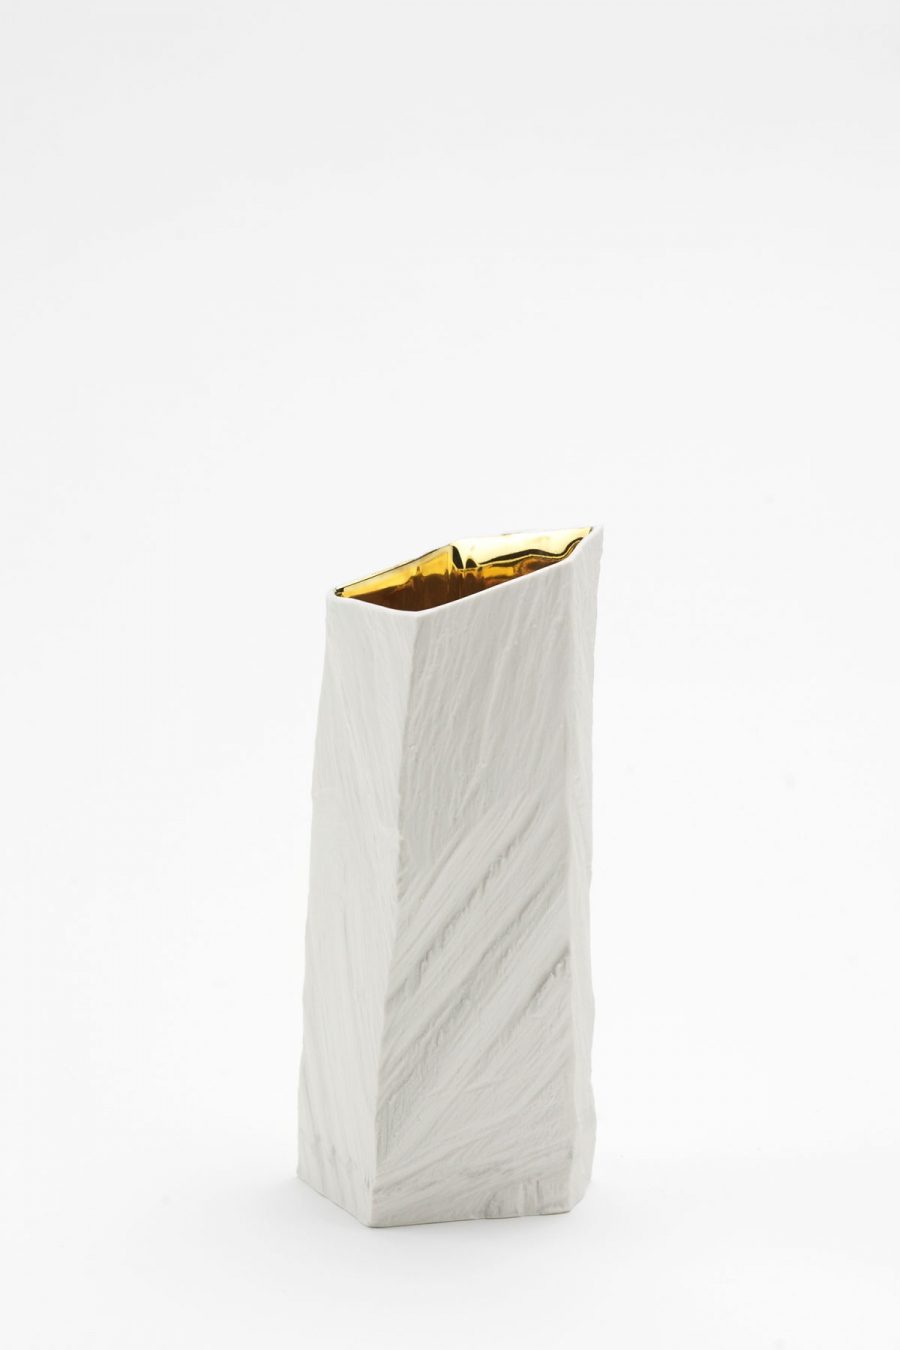 Vase S white gold Woodraw